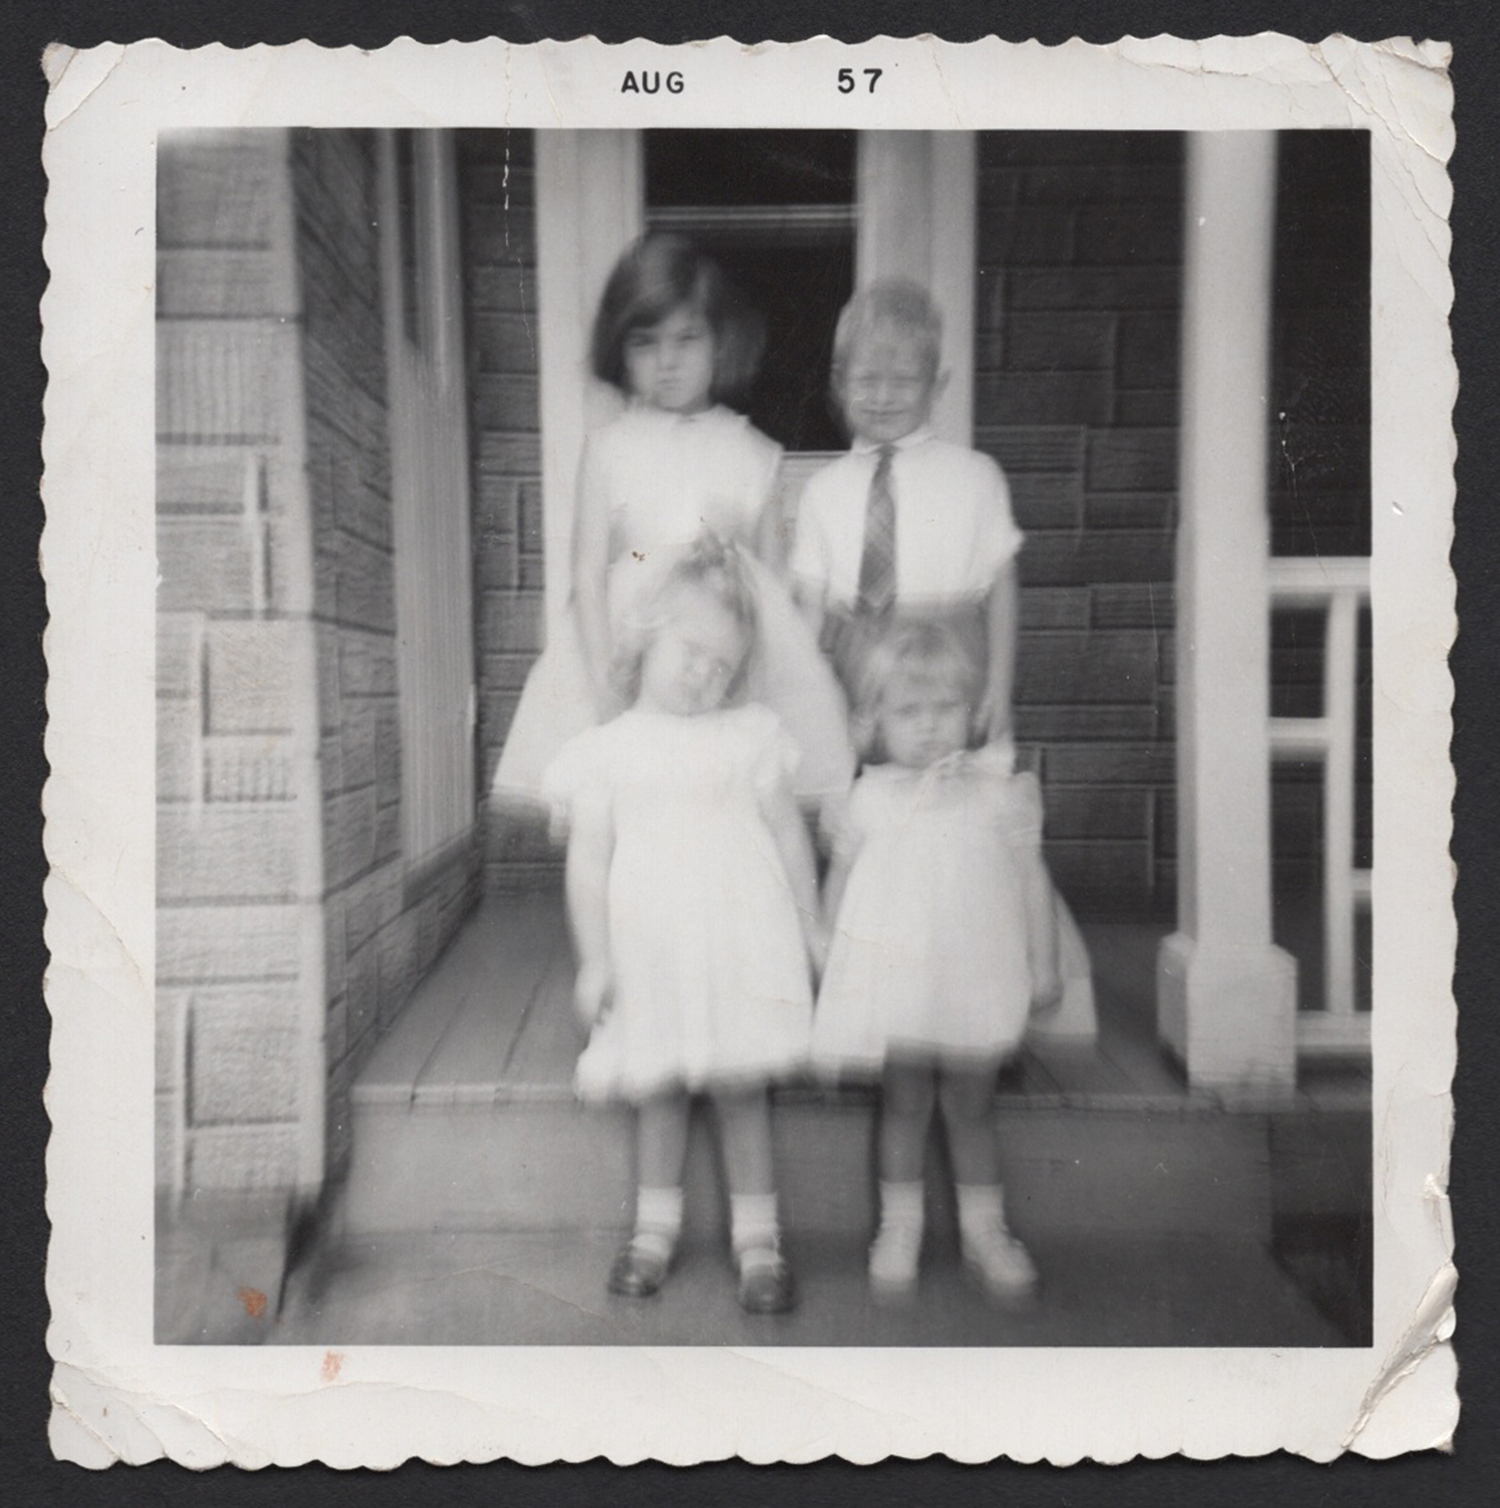 'It's our parents who didn't see us', August 1957, Olive Wallace, inherited family snapshot from the Wallace family archive